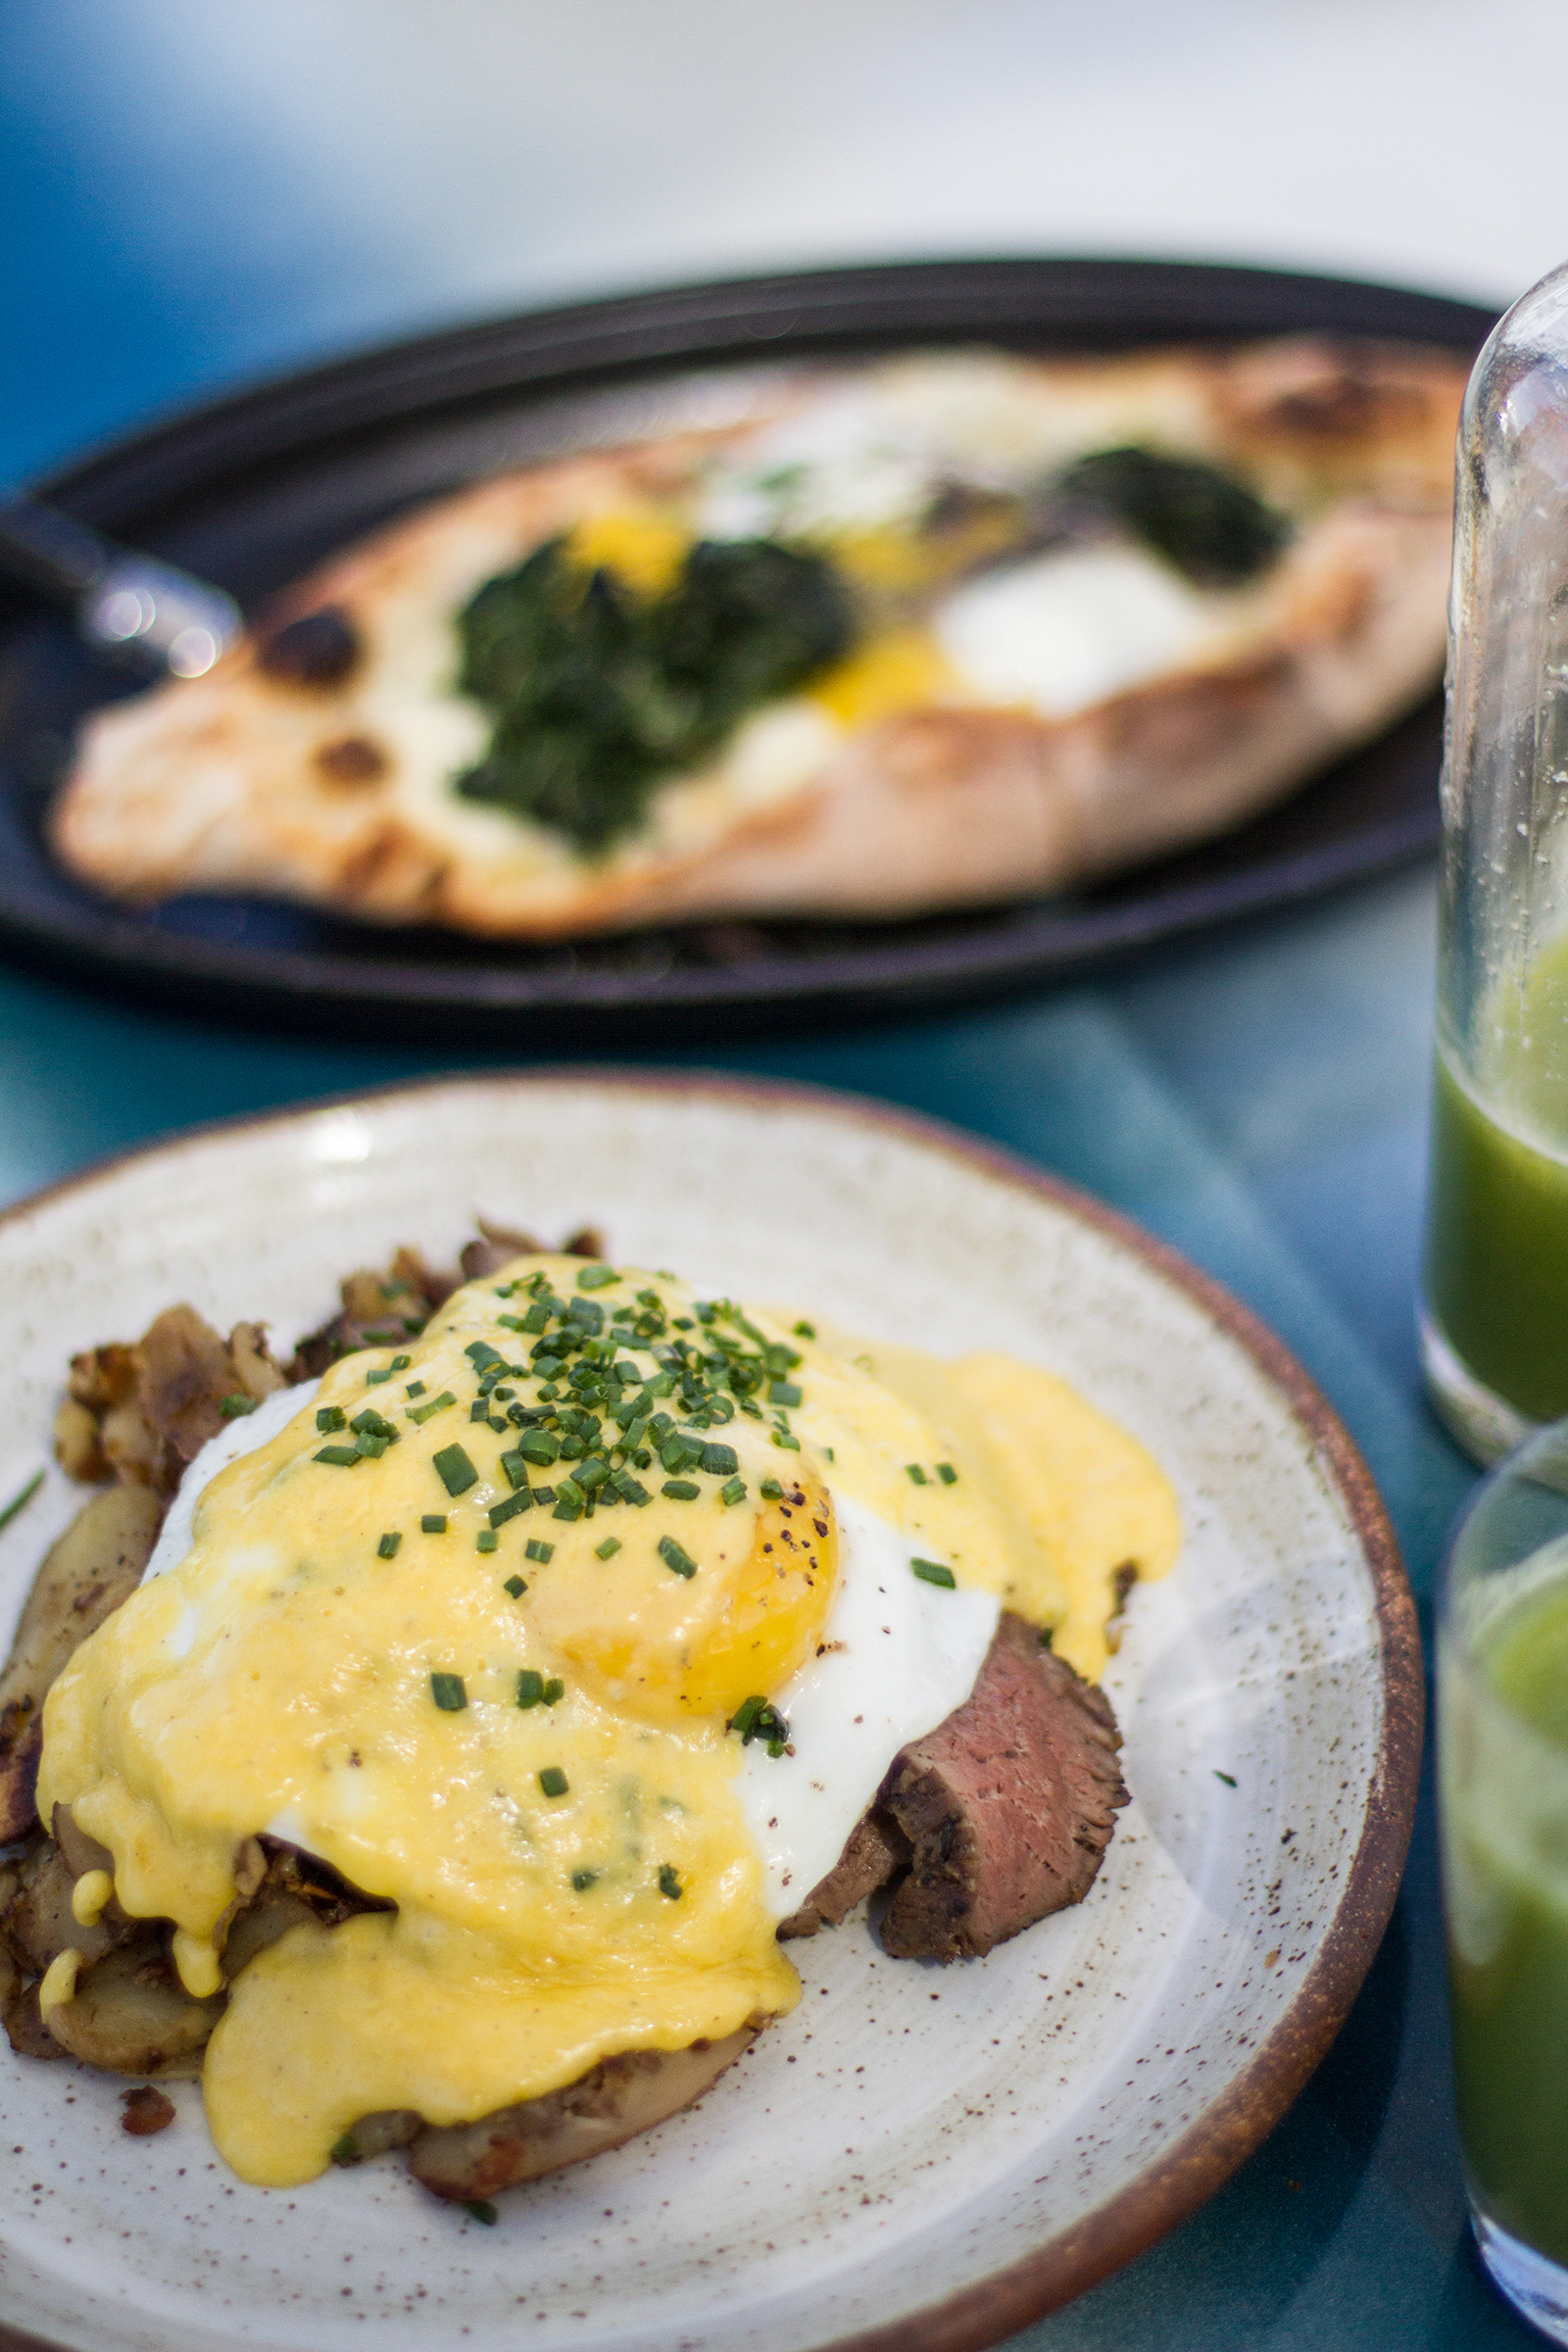 The steak and egg with bearnaise sauce.